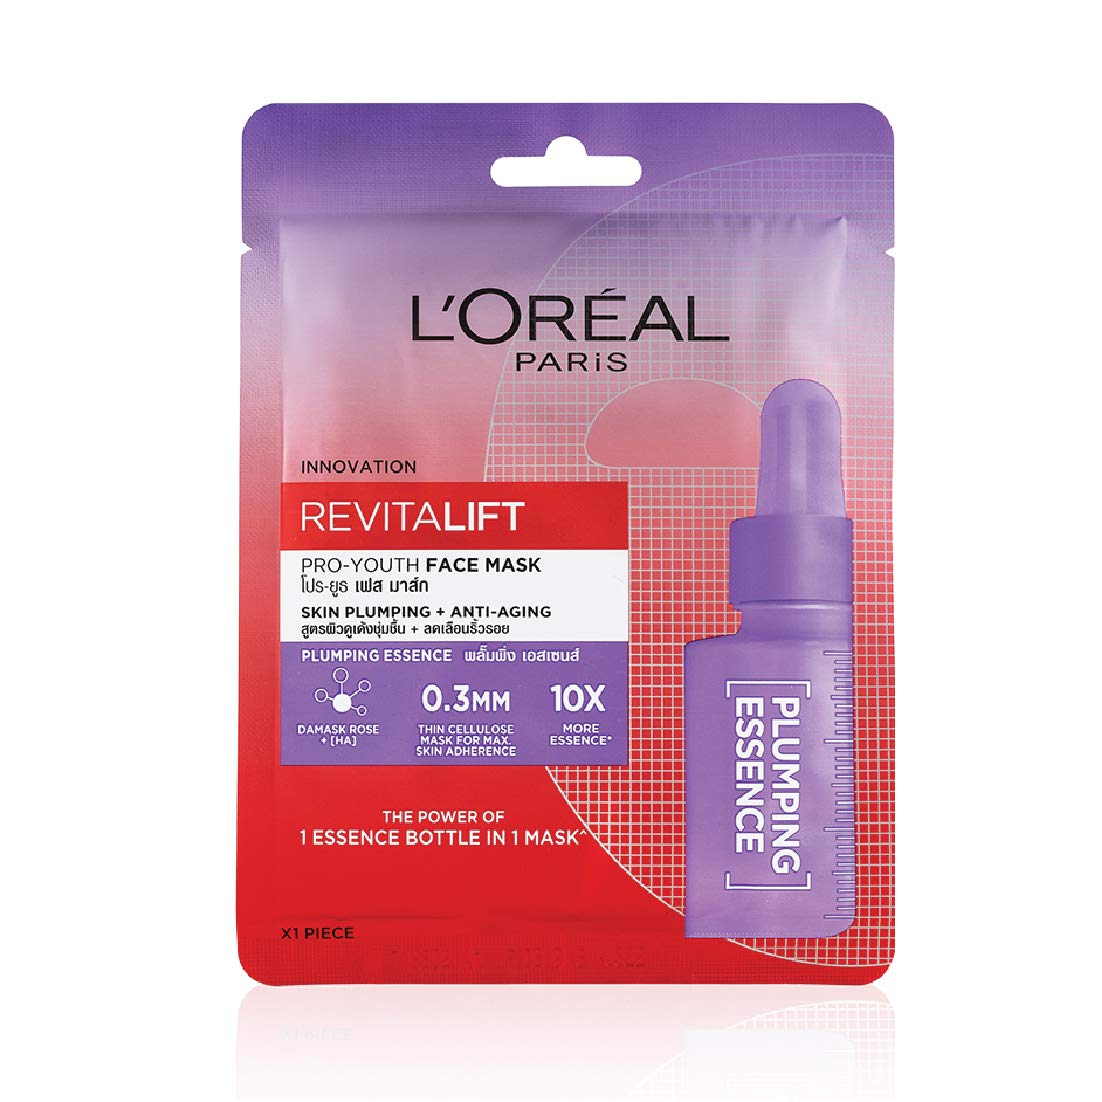 L'Oreal Paris Revitalift Essence Face Sheet Mask